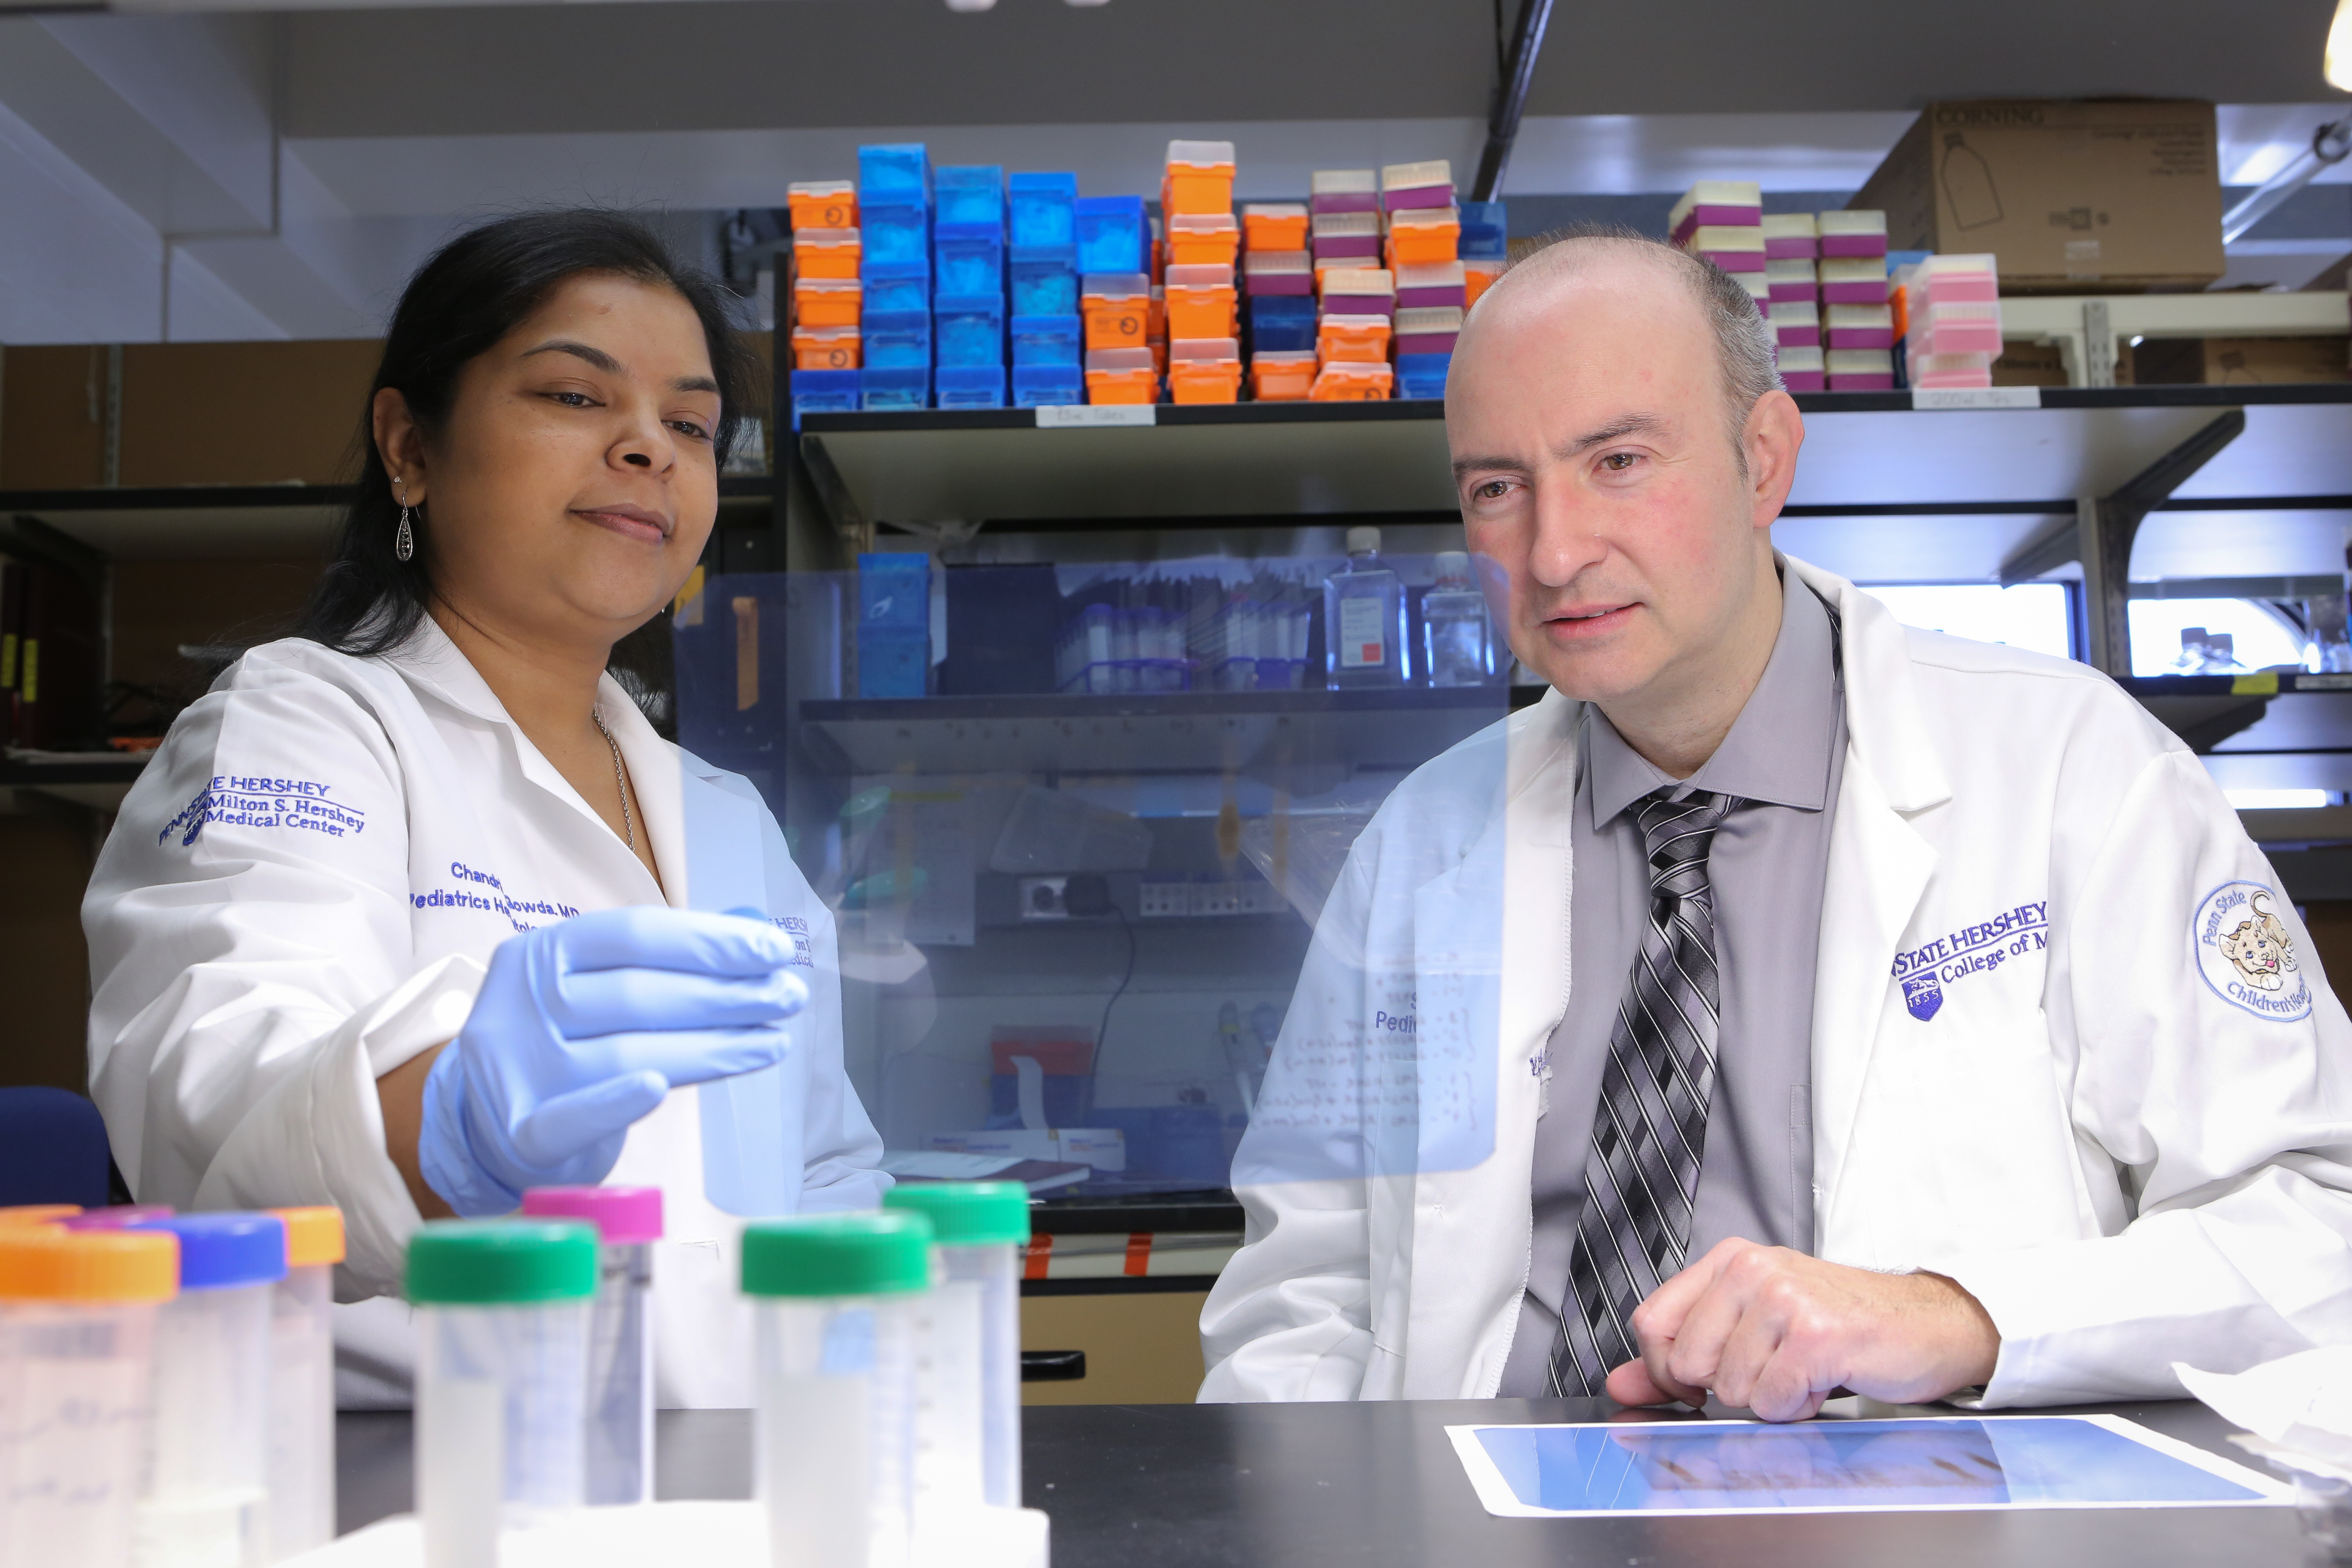 Dr. Chandrika Gowda is seen with her mentor, Dr. Sinisa Dovat. Gowda recently received a 2017 Young Investigator Award for her work in pediatric hematology/oncology. The two investigators are picture in a lab, with sample vials on the table in front of them and laboratory equipment visible in the background.